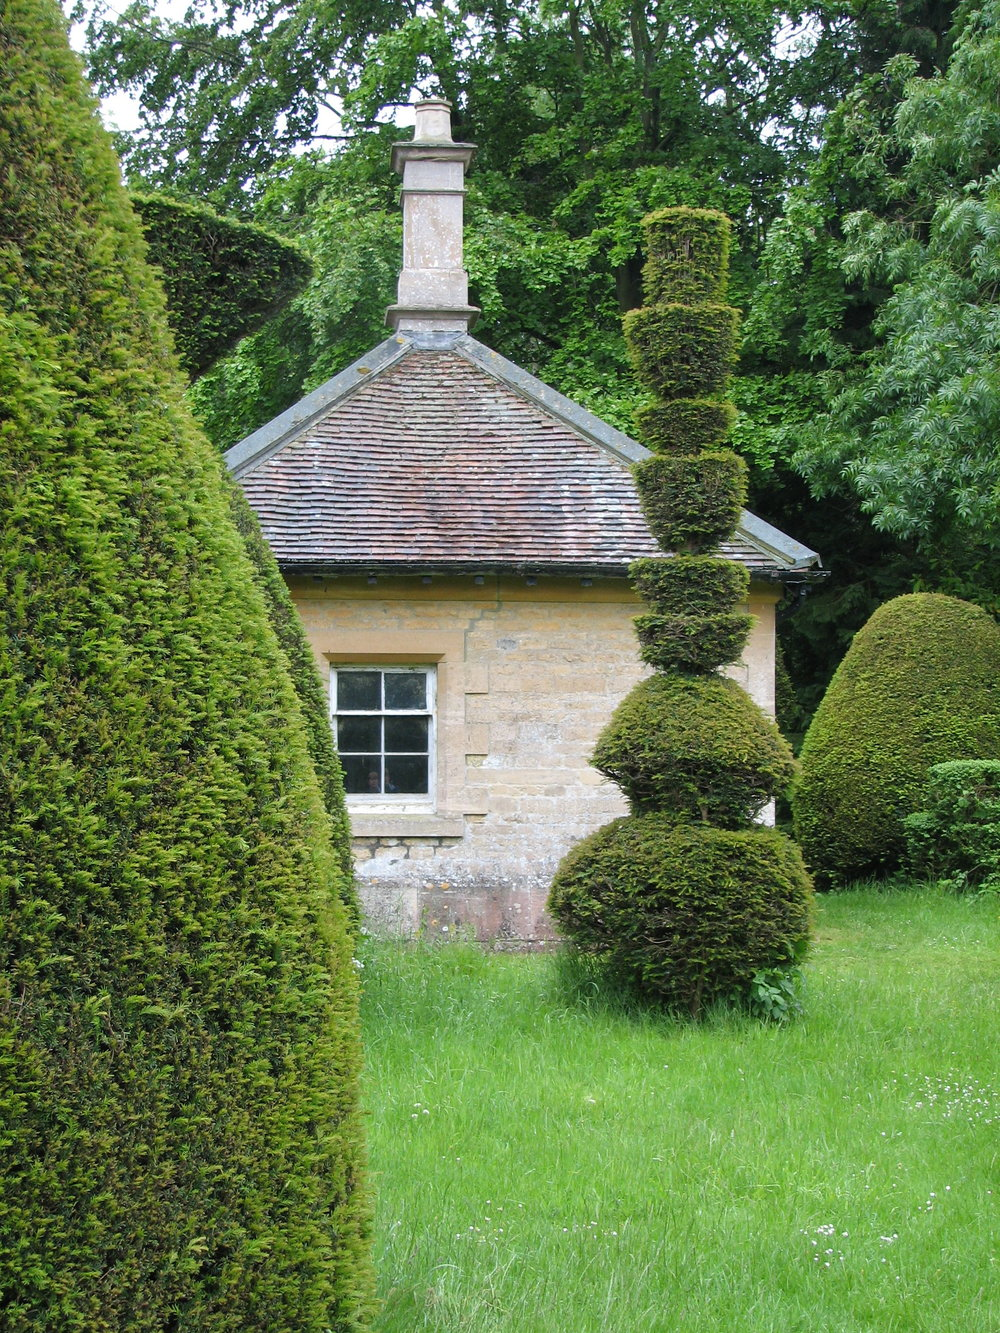 Yew Tree Avenue, Clipsham - - The Olive Branch and Beech House